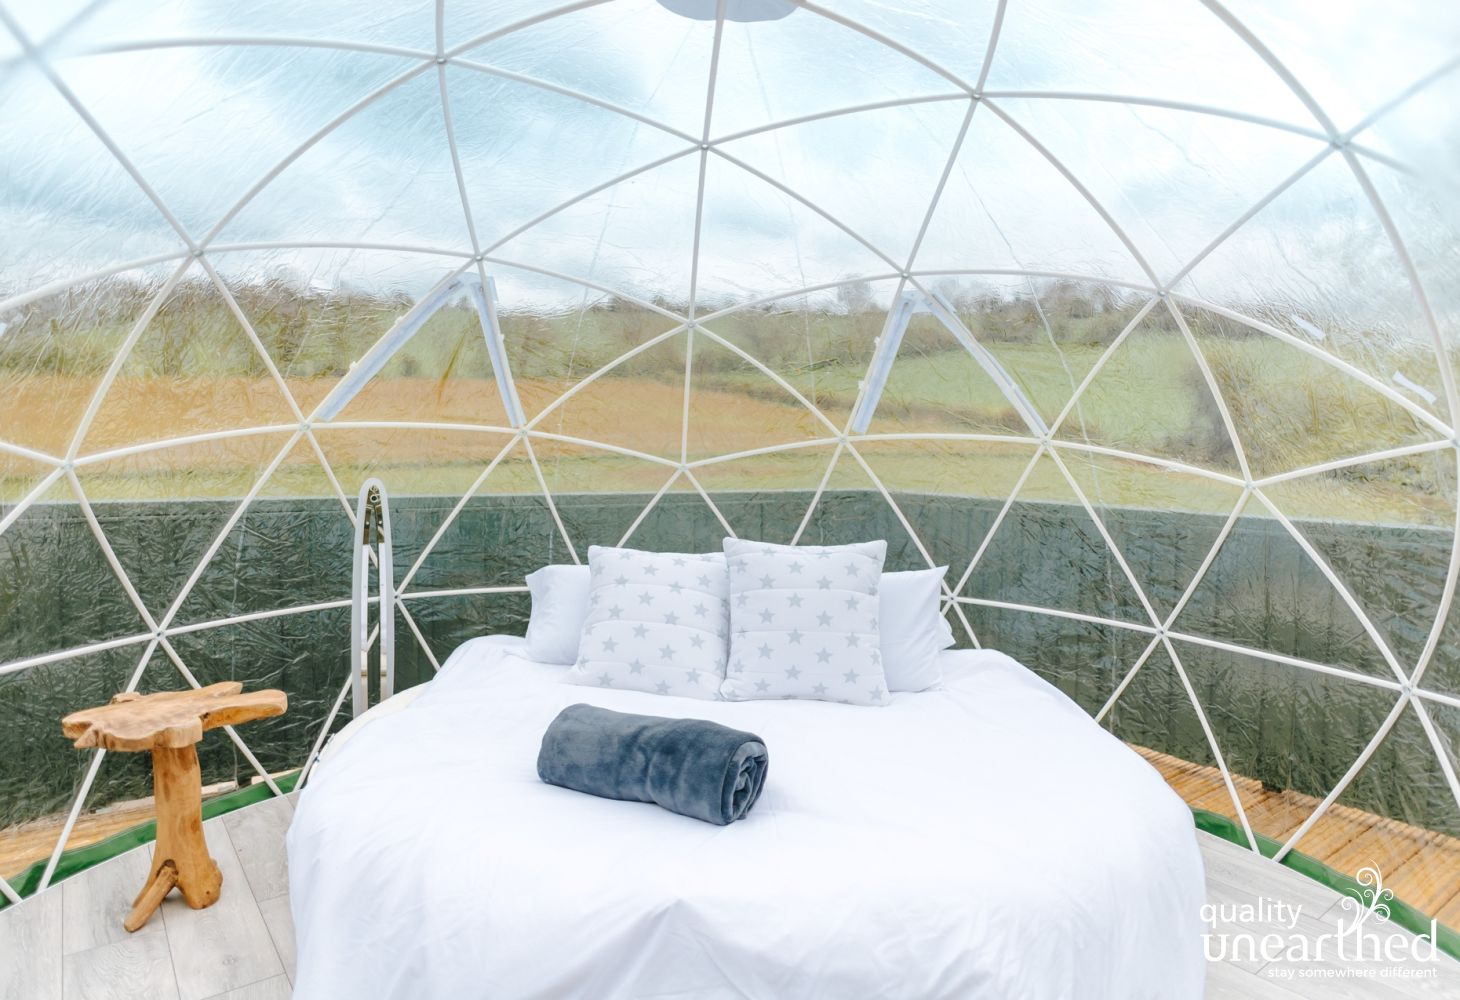 Quirky glamping doesn't get much better than having your own king size circular bed to lounge in whilst stargazing